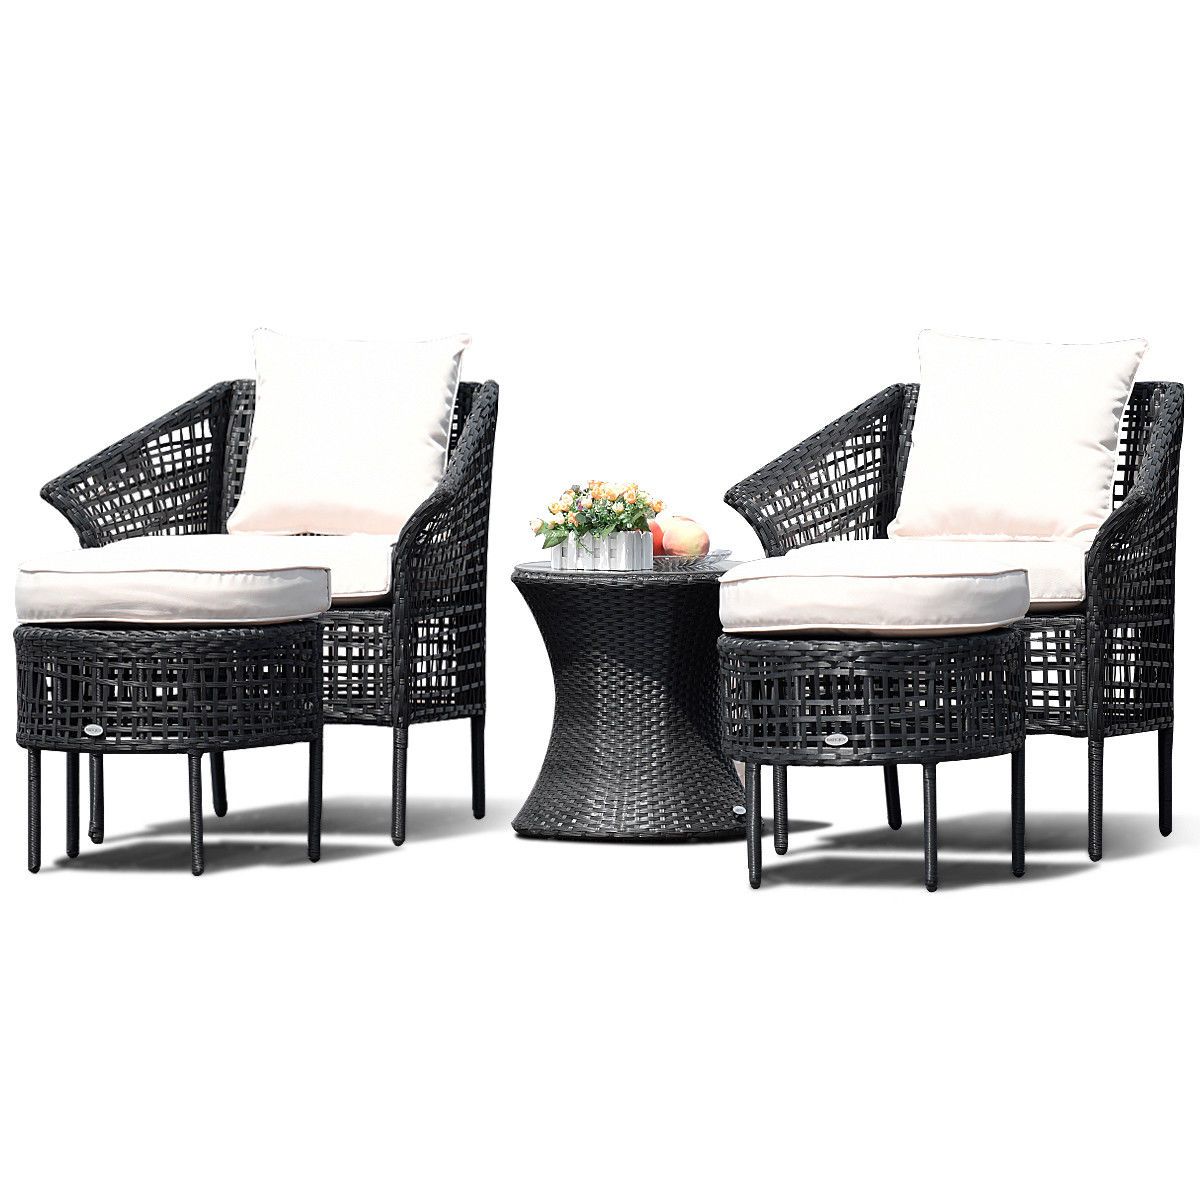 Costway 5 PCS Patio Furniture Dining Sets Leisure Set Rattan Seats Table Ottoman Beige